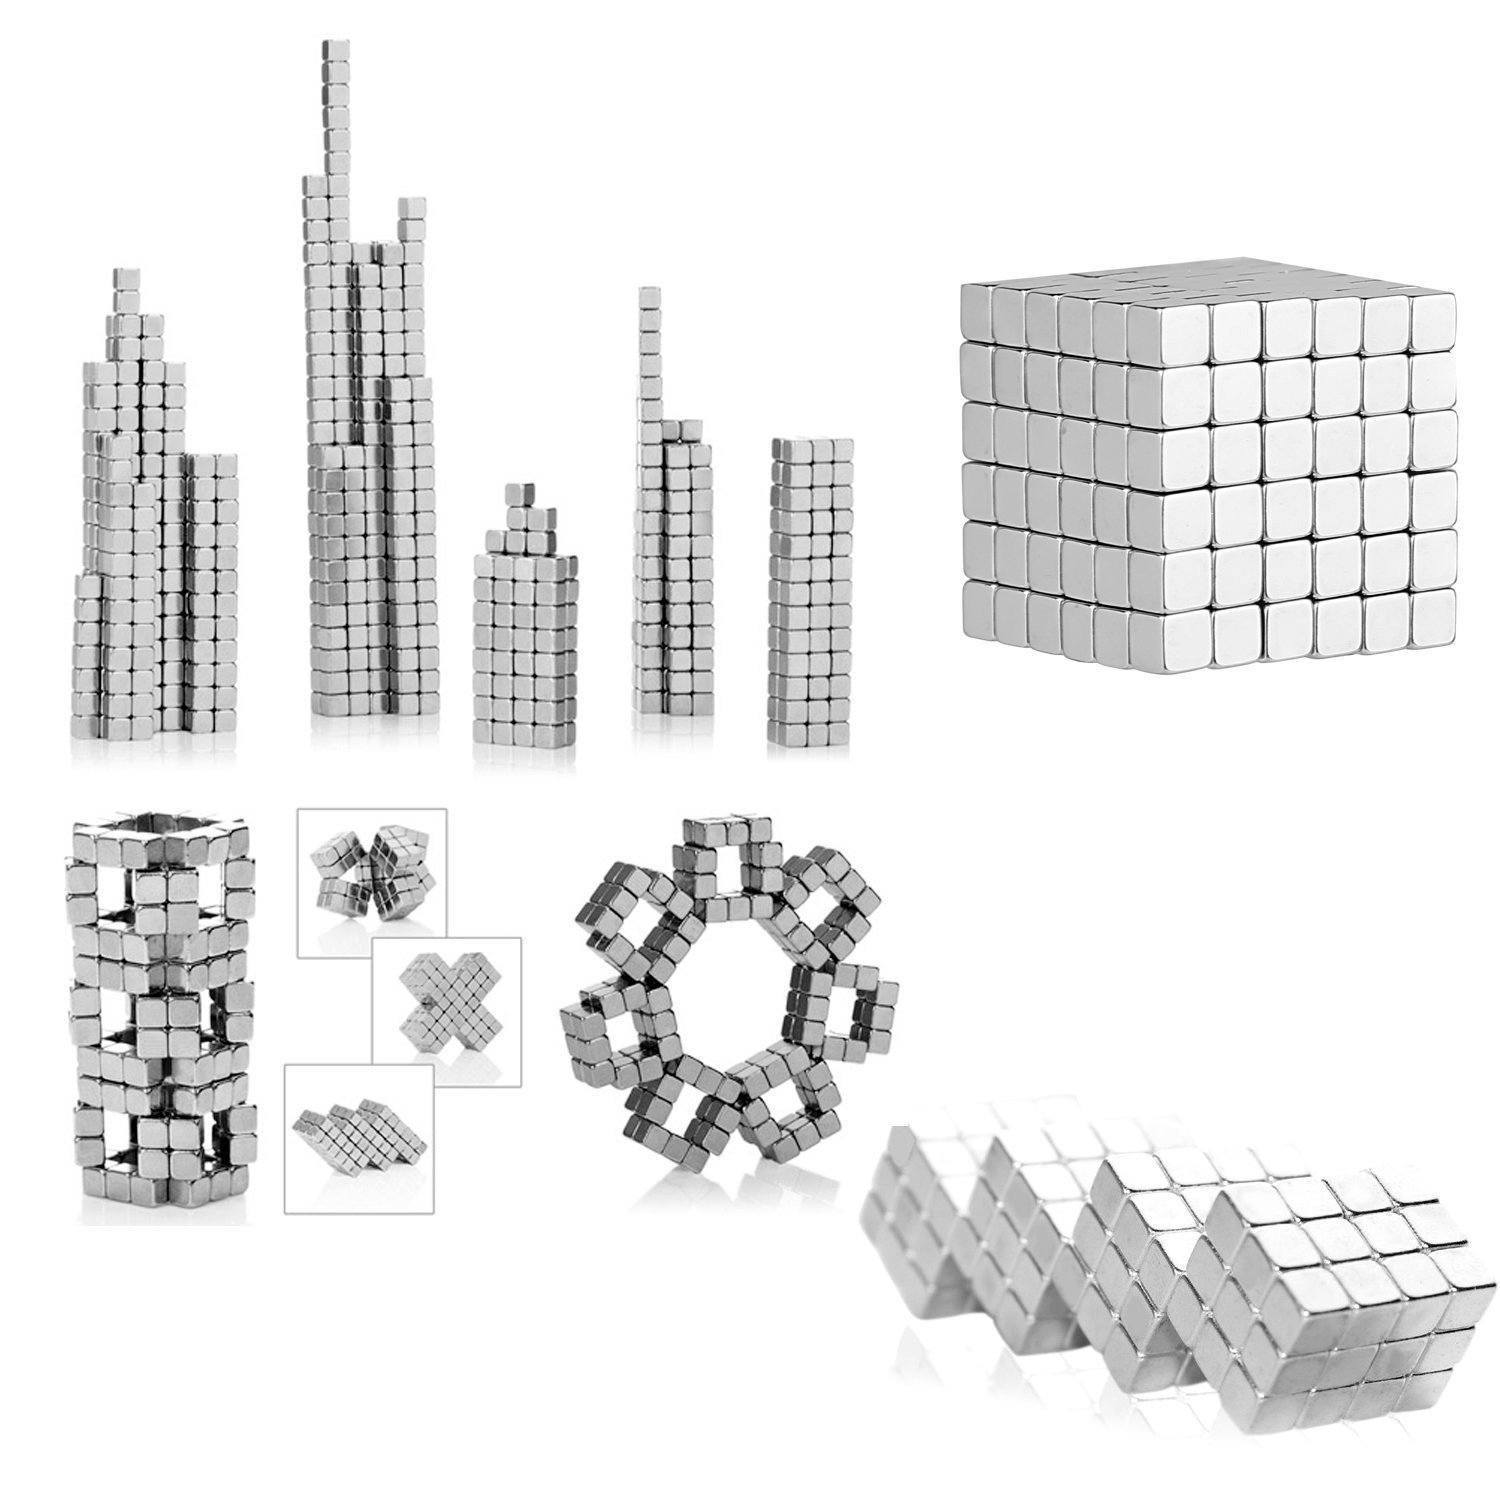 Gadgets - Magic 216-piece Cube